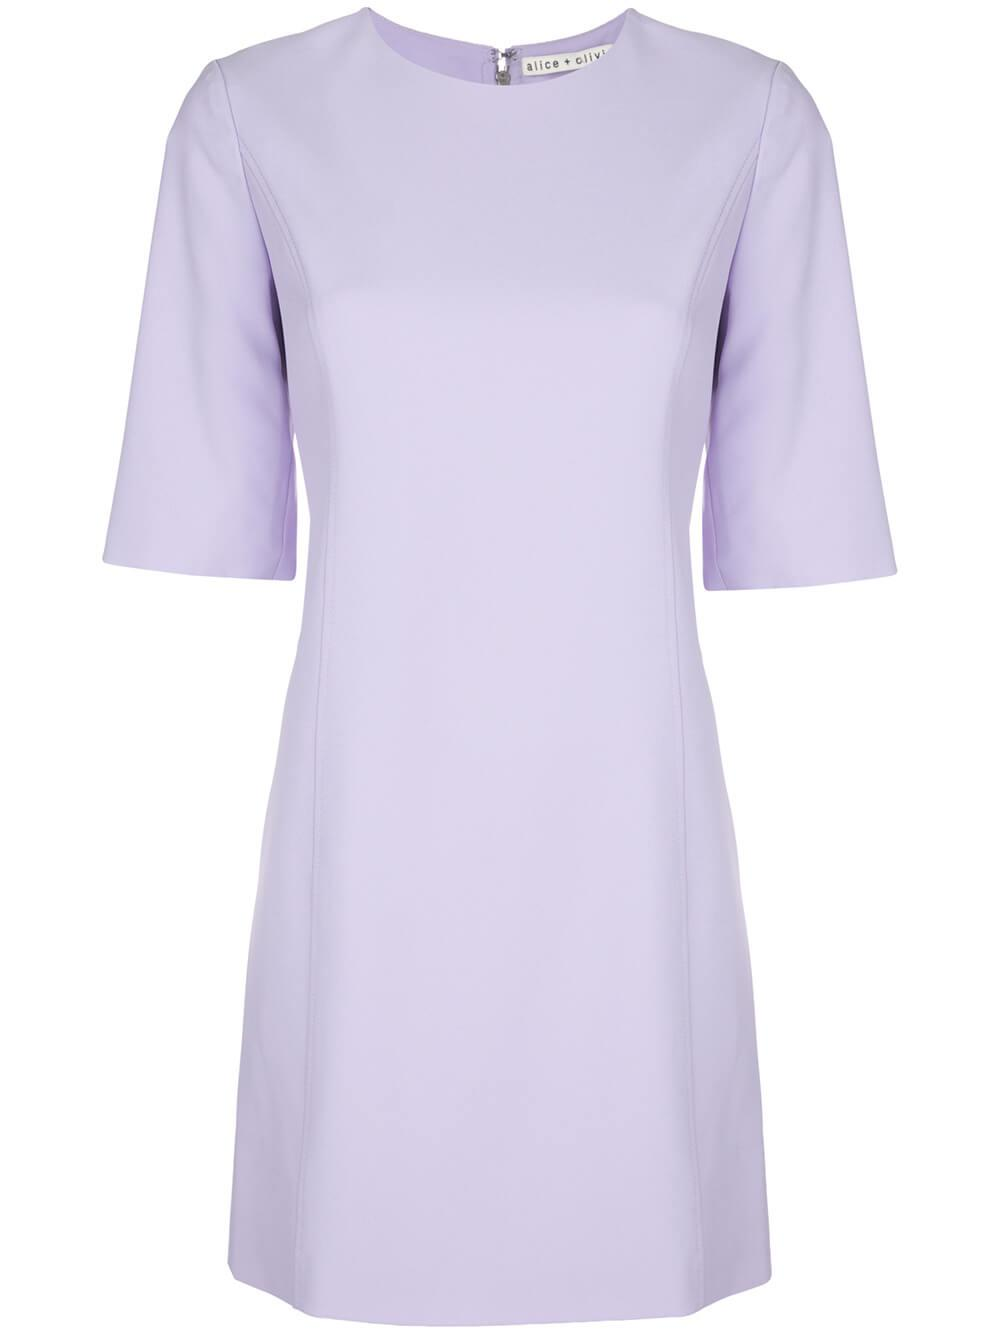 Coley Short Sleeves Aline Shift Dress